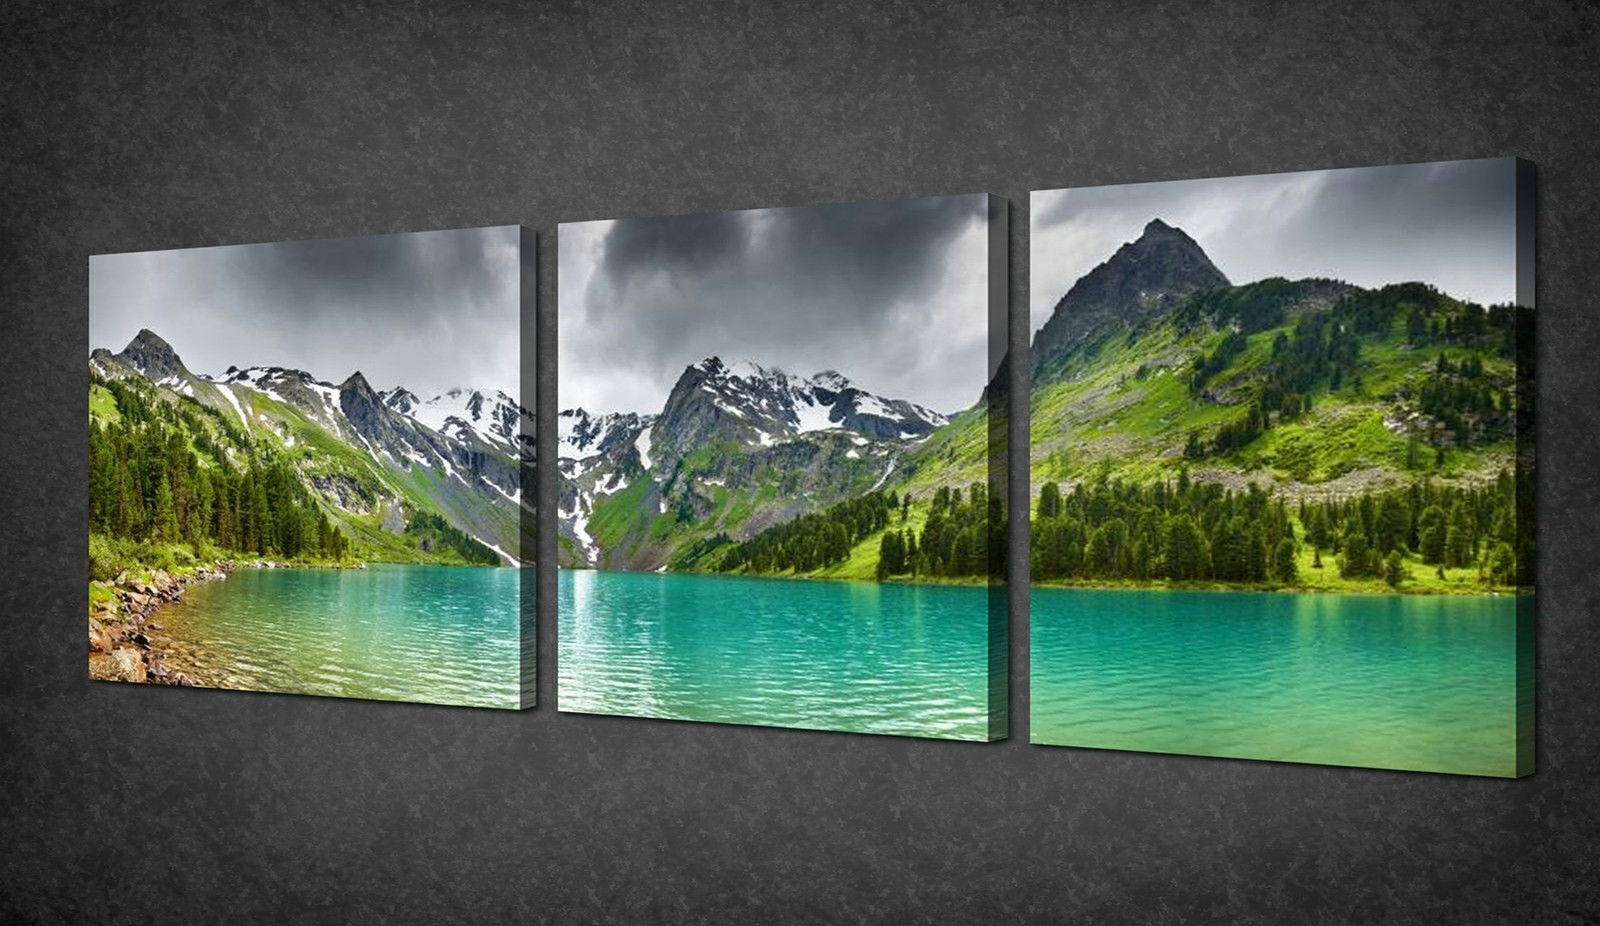 Wall Art: Best Sample Ideas Panoramic Wall Art Glass Wall Art With Regard To Most Popular Panoramic Canvas Wall Art (View 13 of 15)